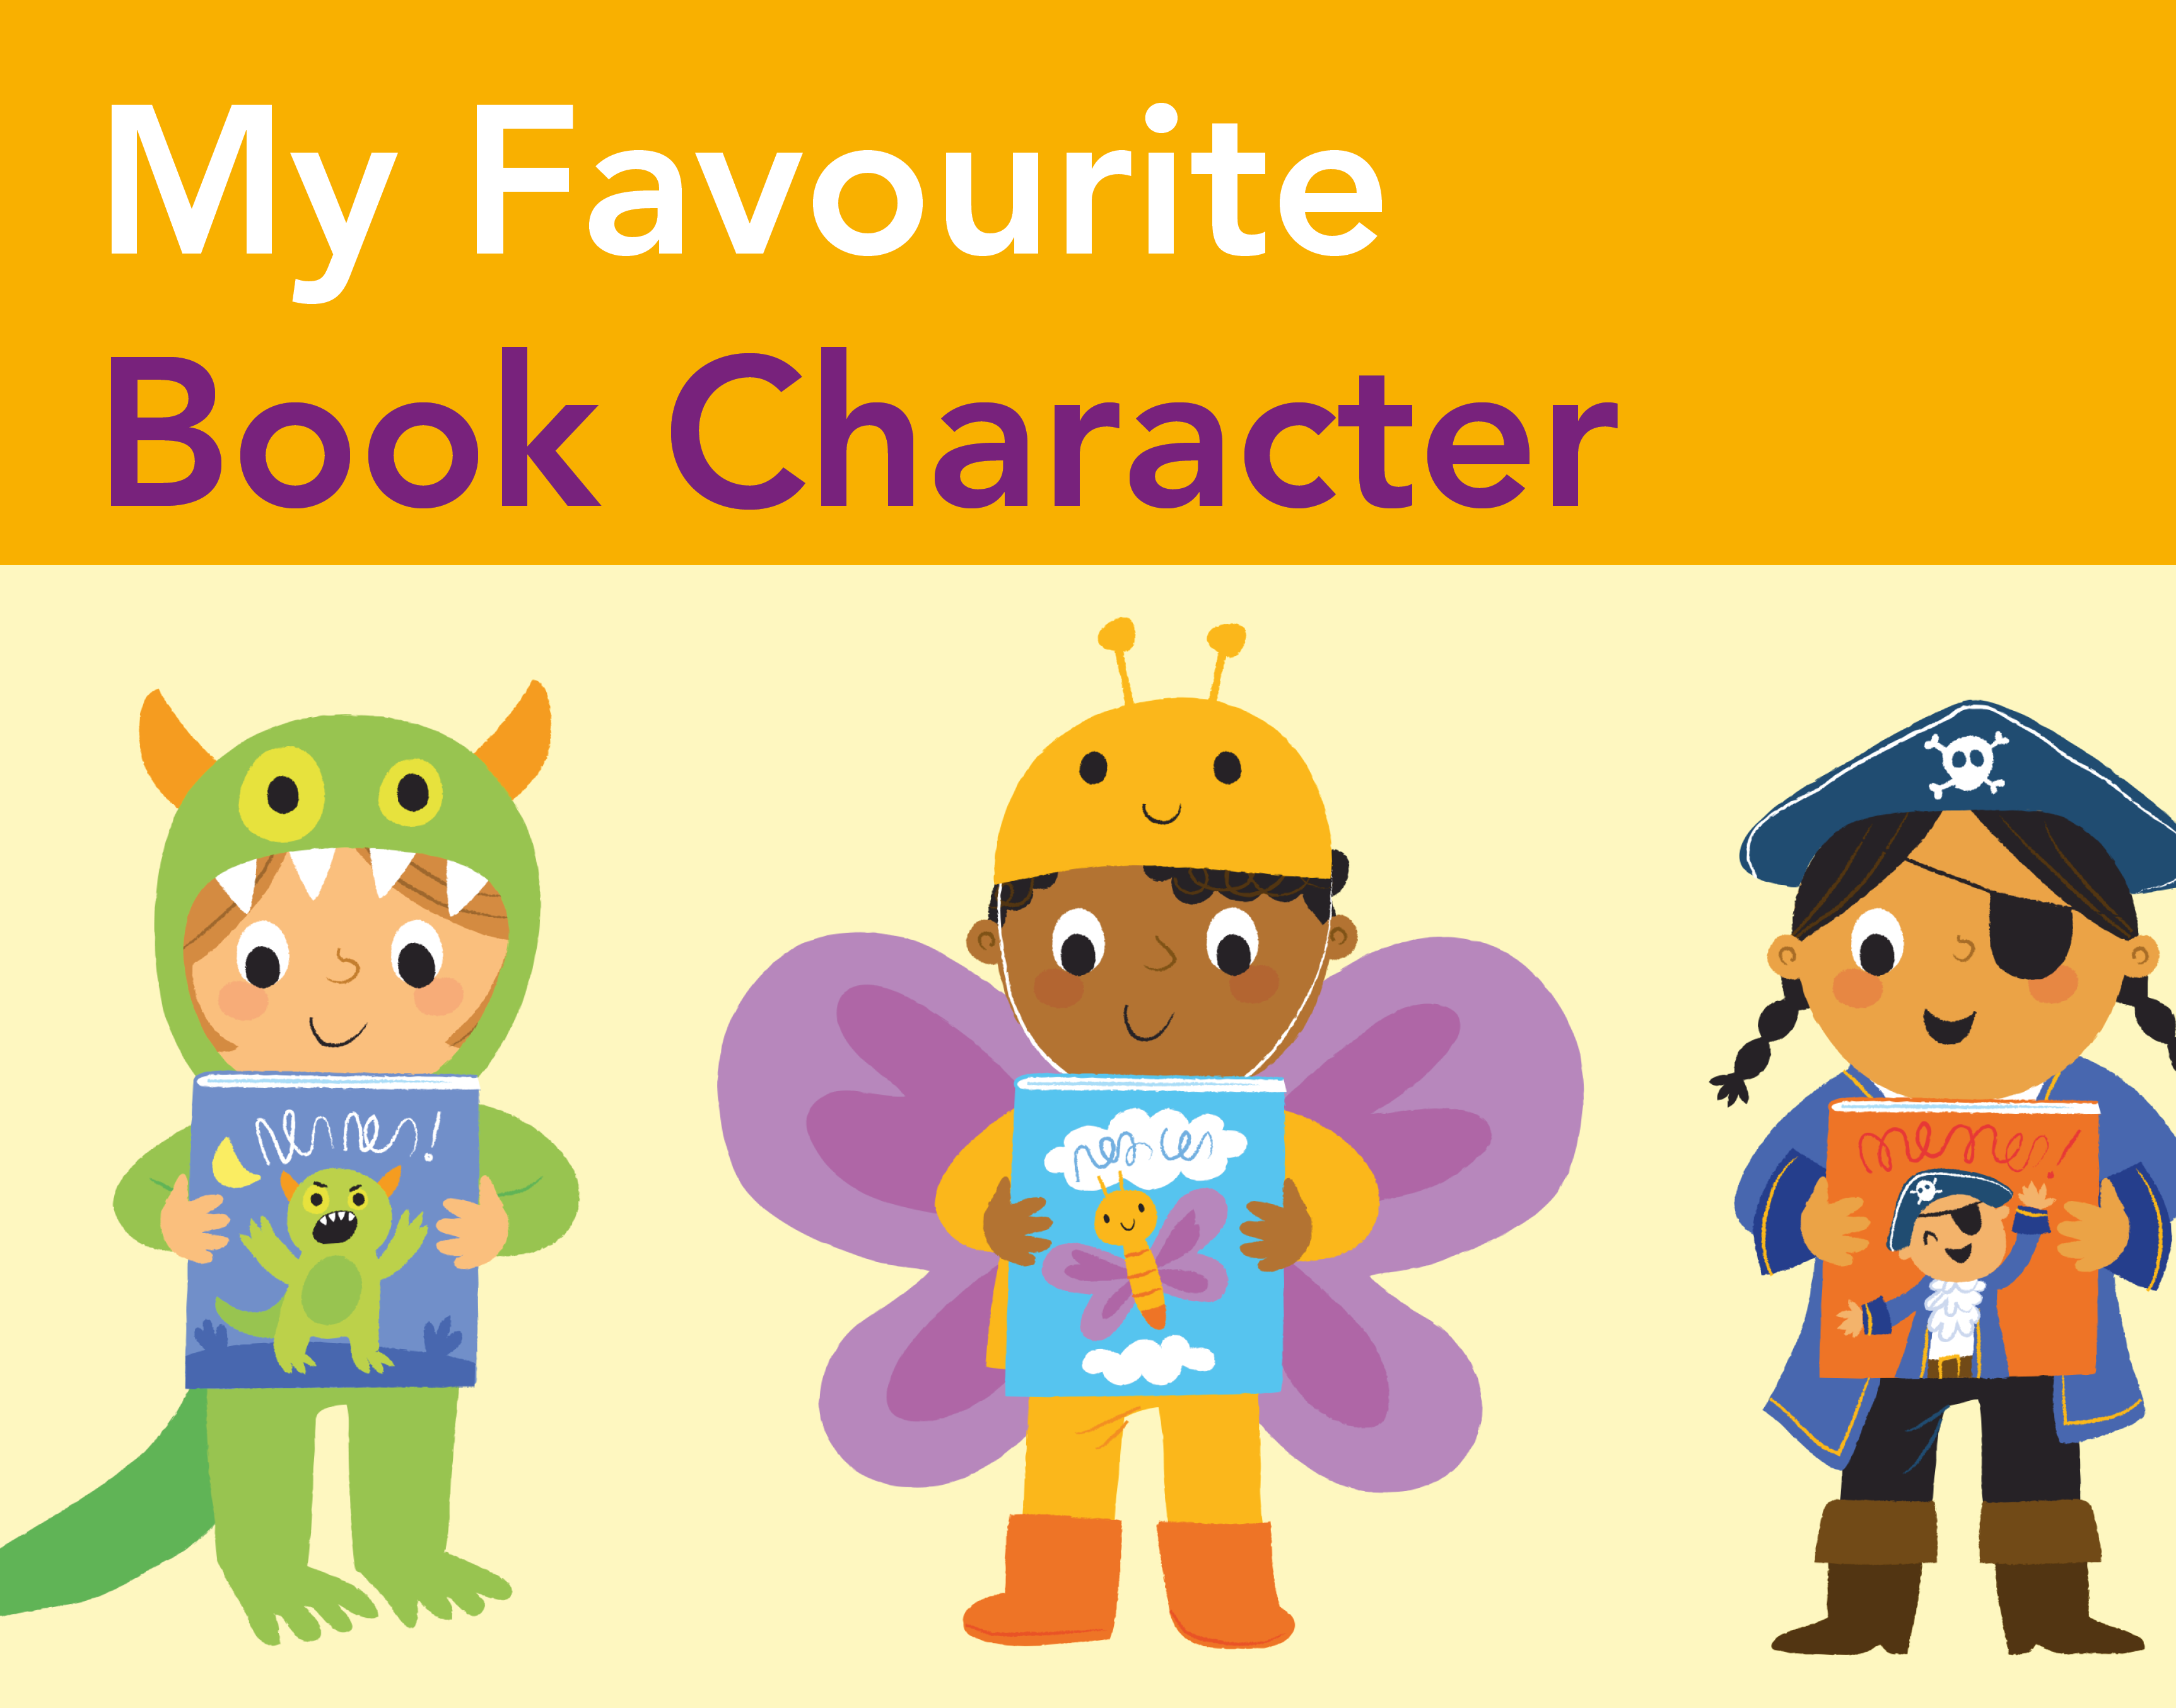 My Favourite Book Character